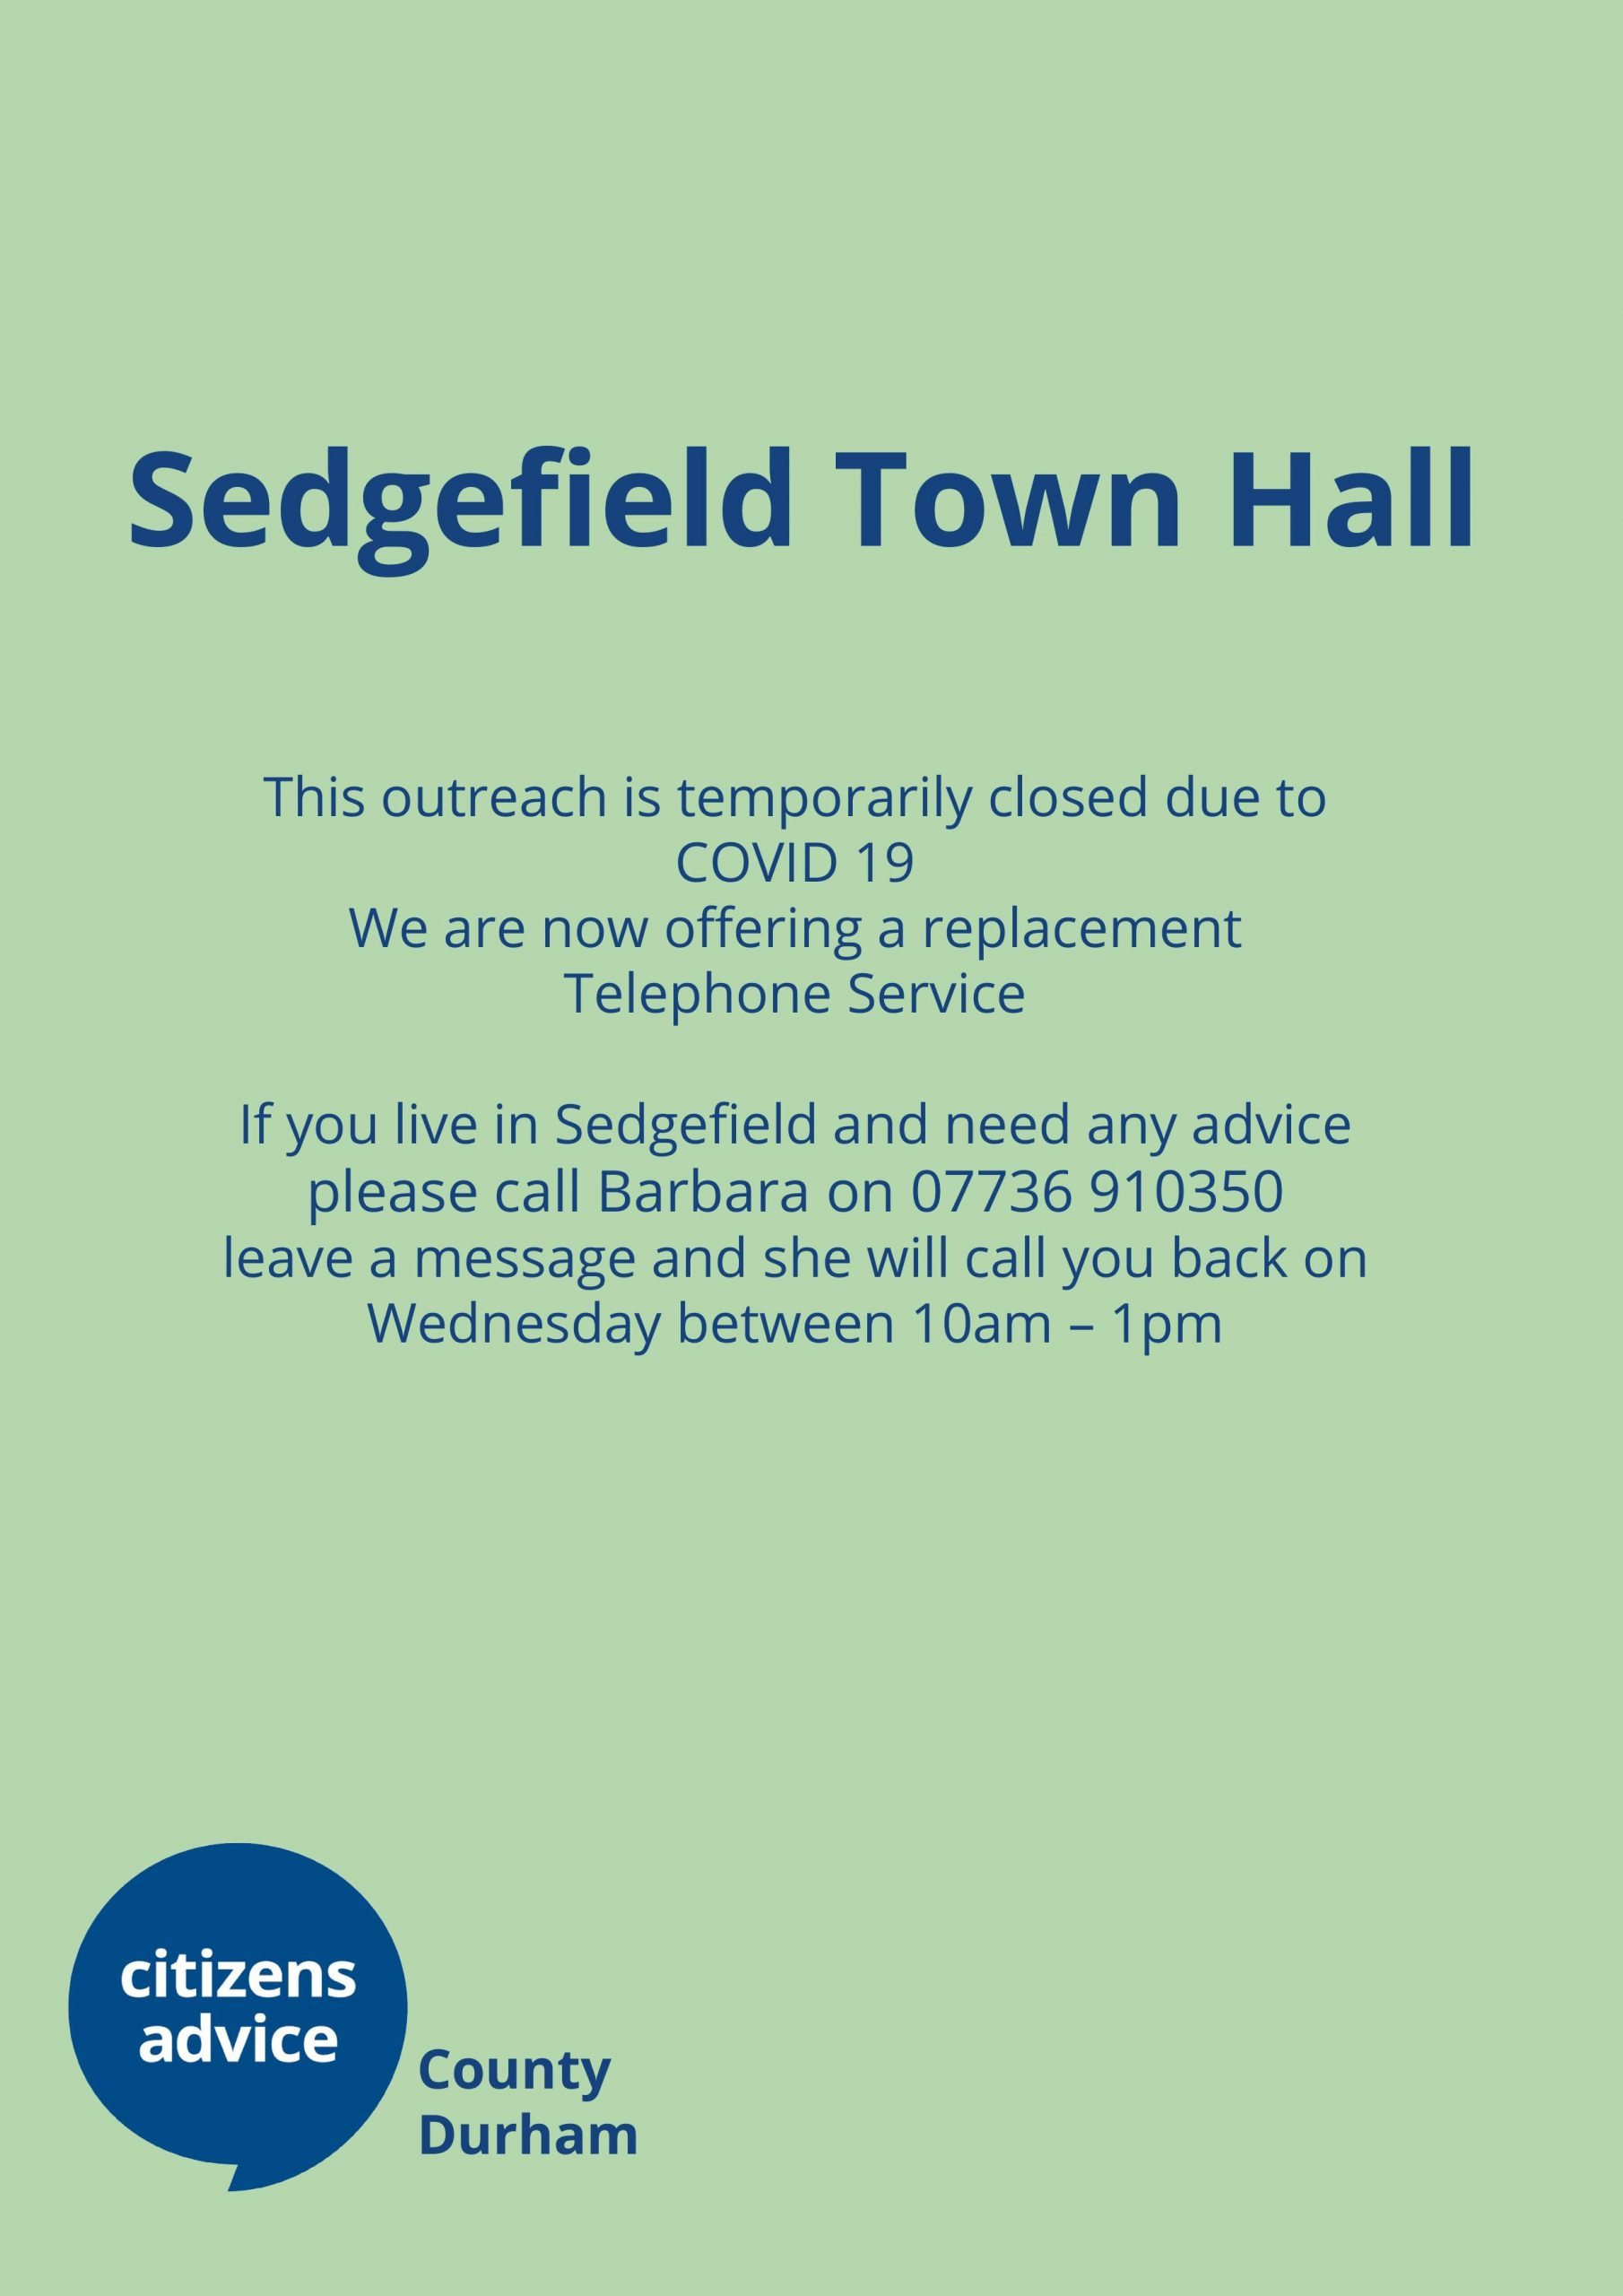 Sedgefield Outreach- Outreach closed but please call